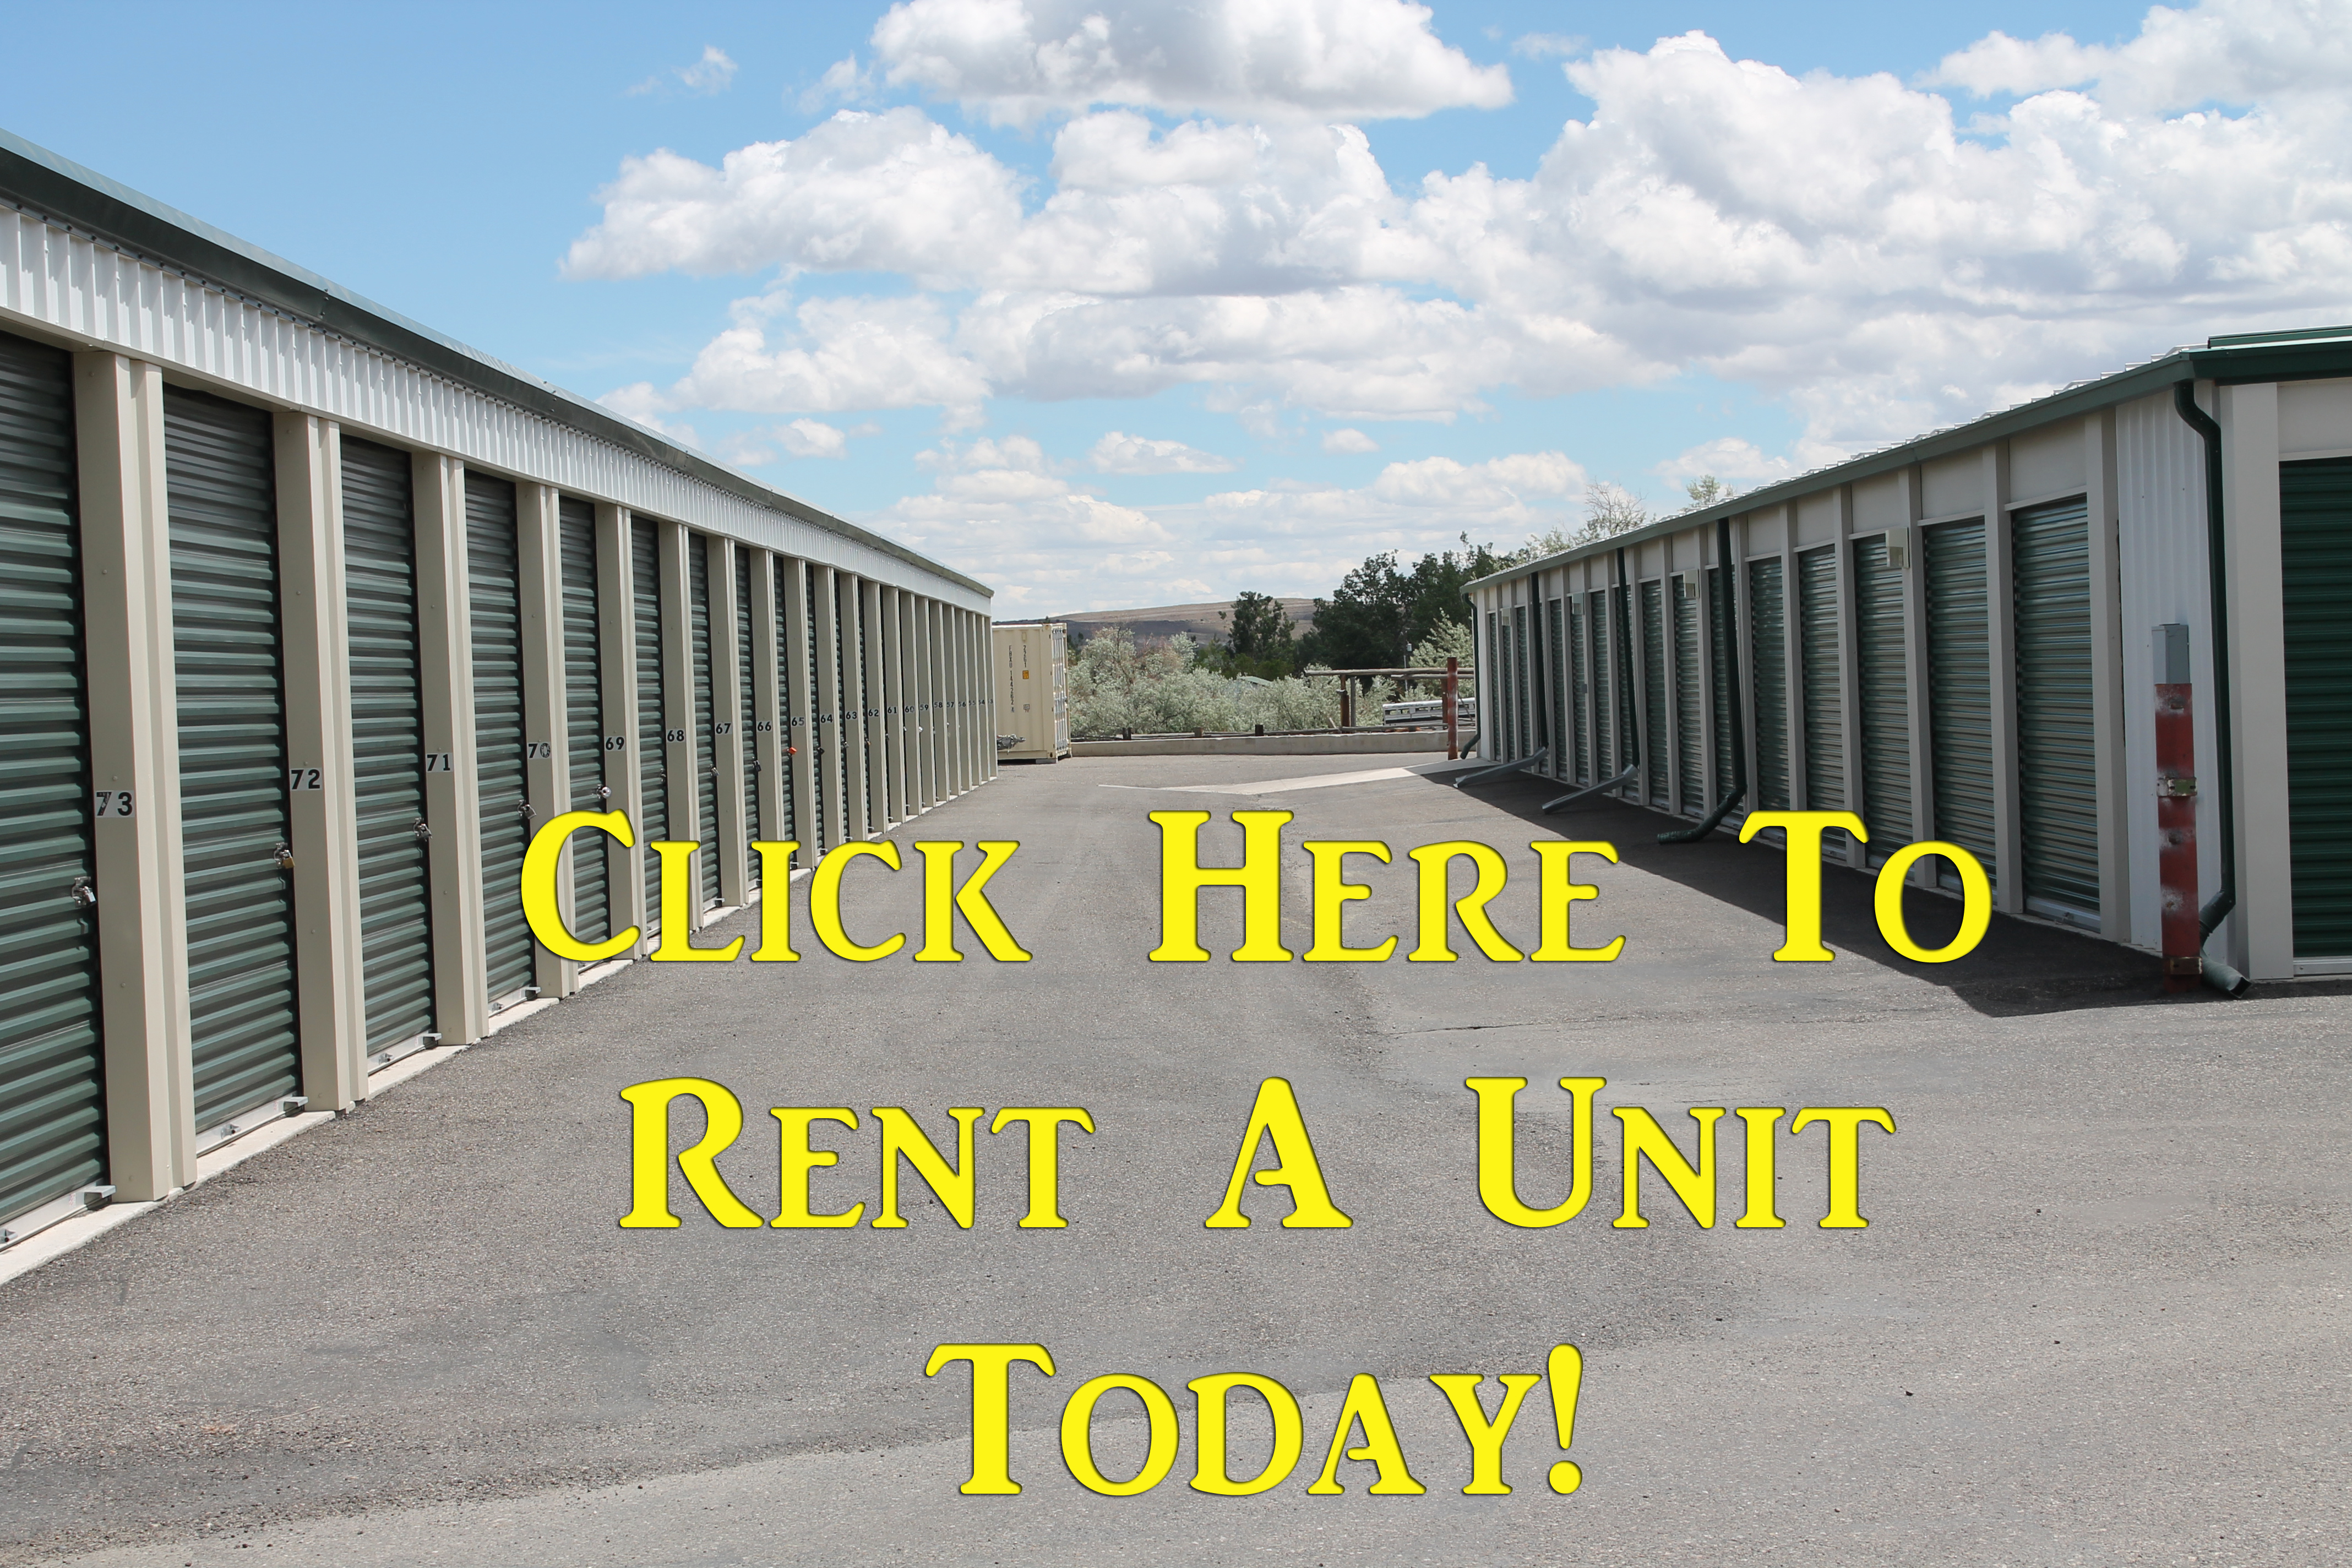 garage home storage sheds own for rent indiana buildings texas in beaumont muncie harlingen overman ohio to